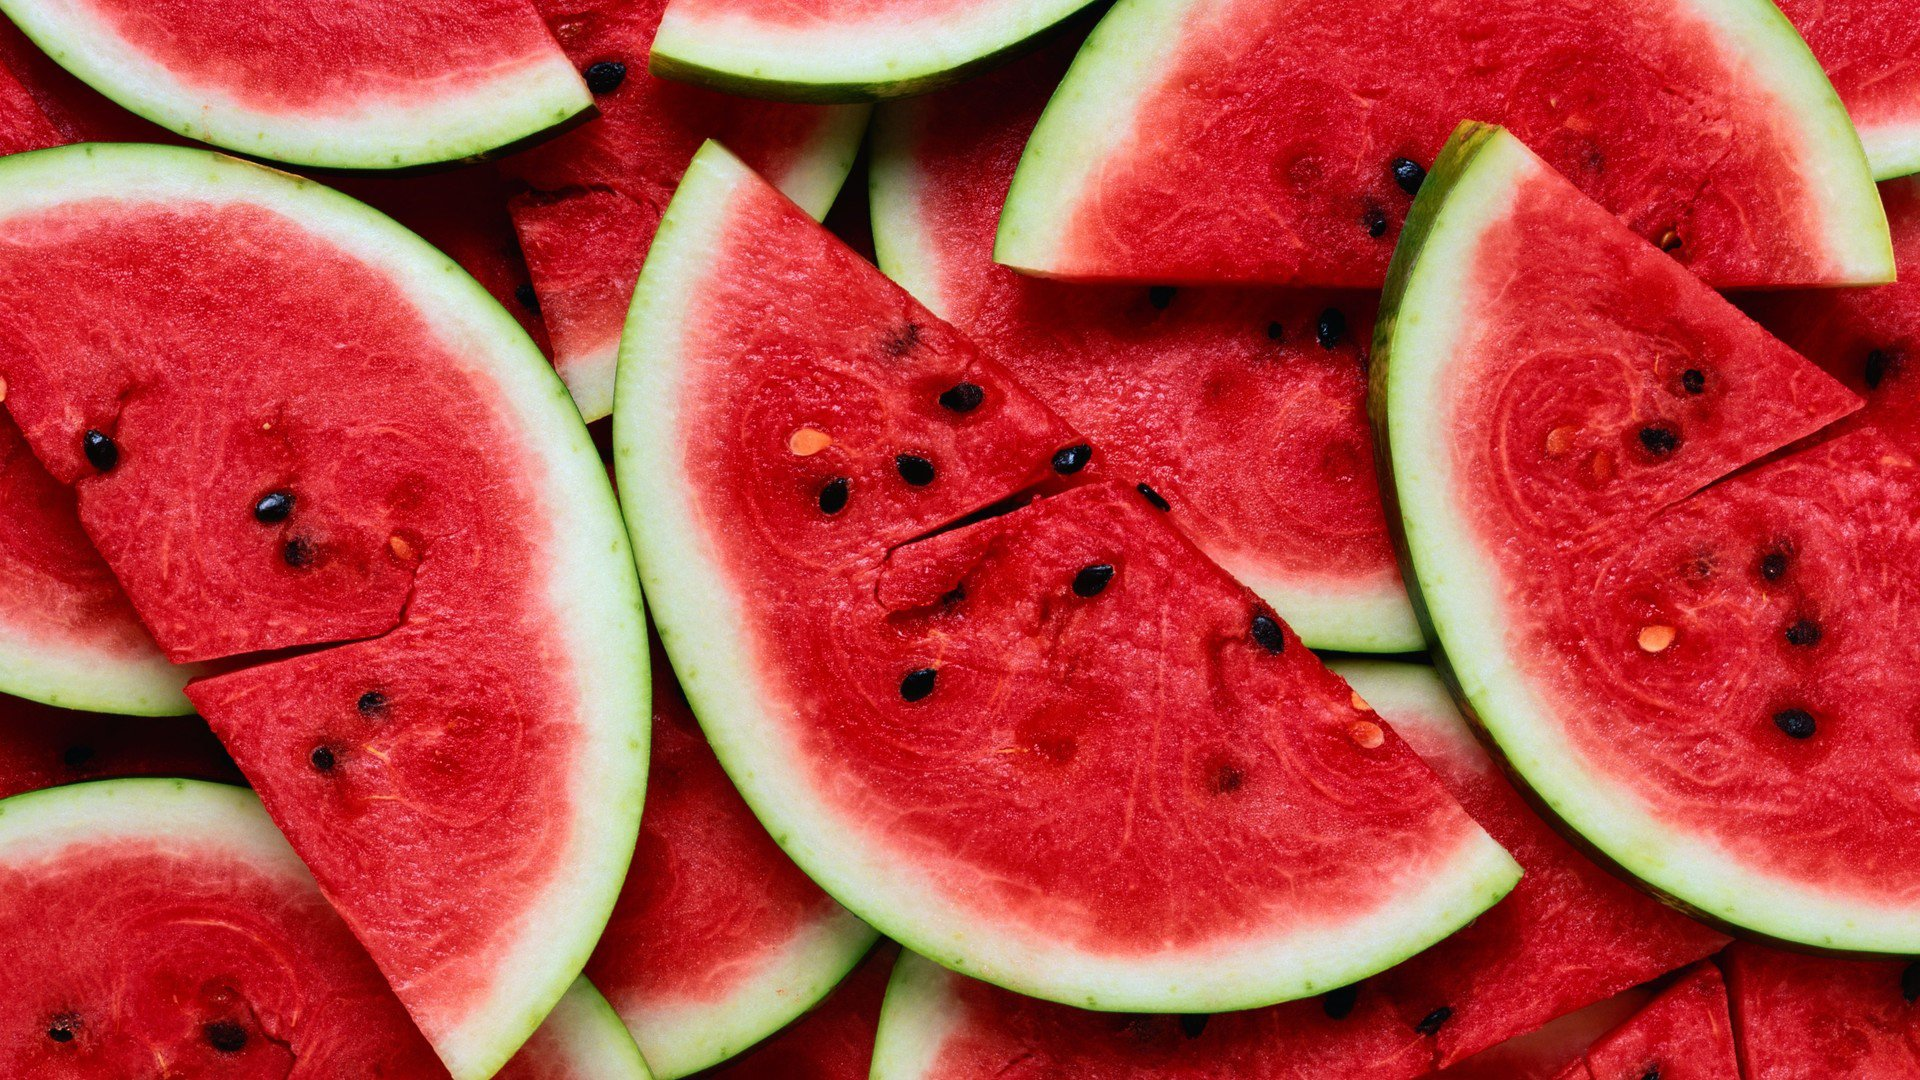 108 Watermelon Hd Wallpapers Background Images Wallpaper Abyss